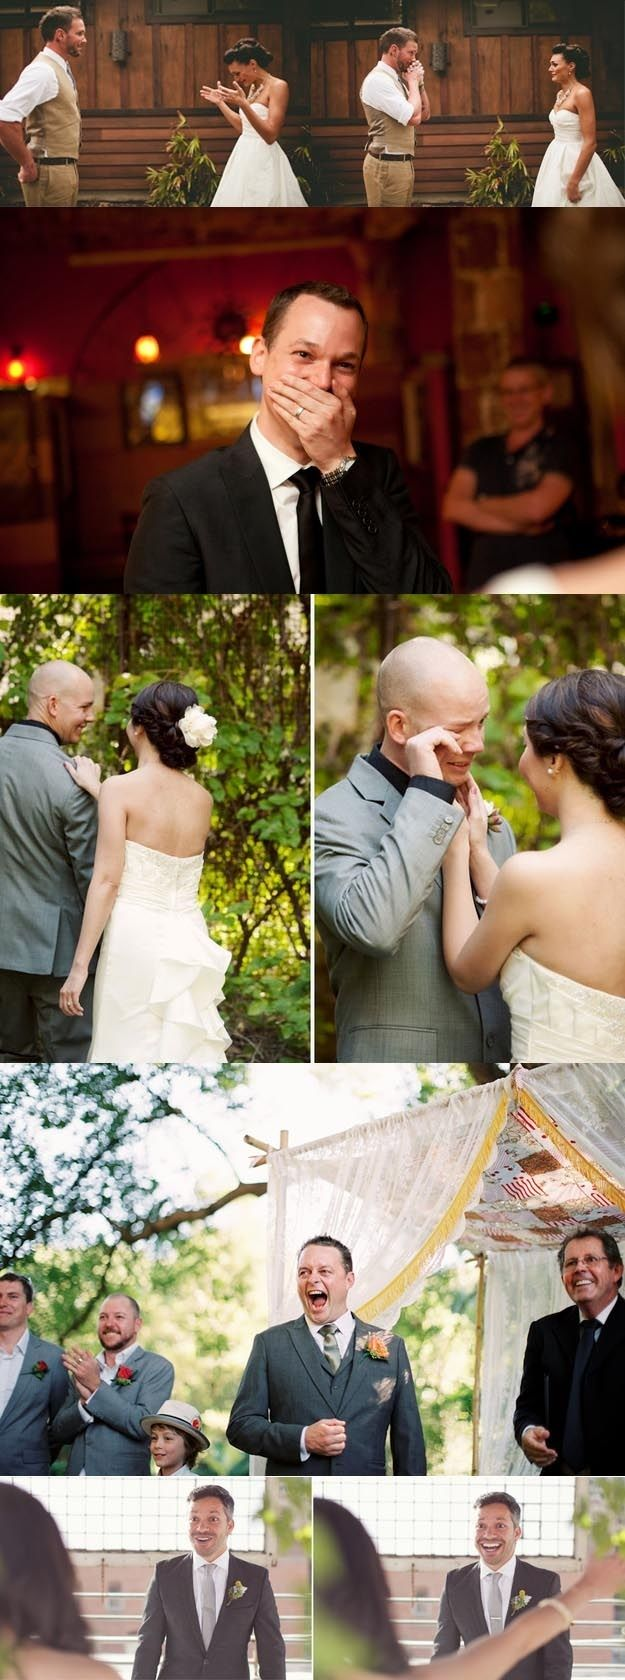 When these grooms saw their brides for the first time. omg.